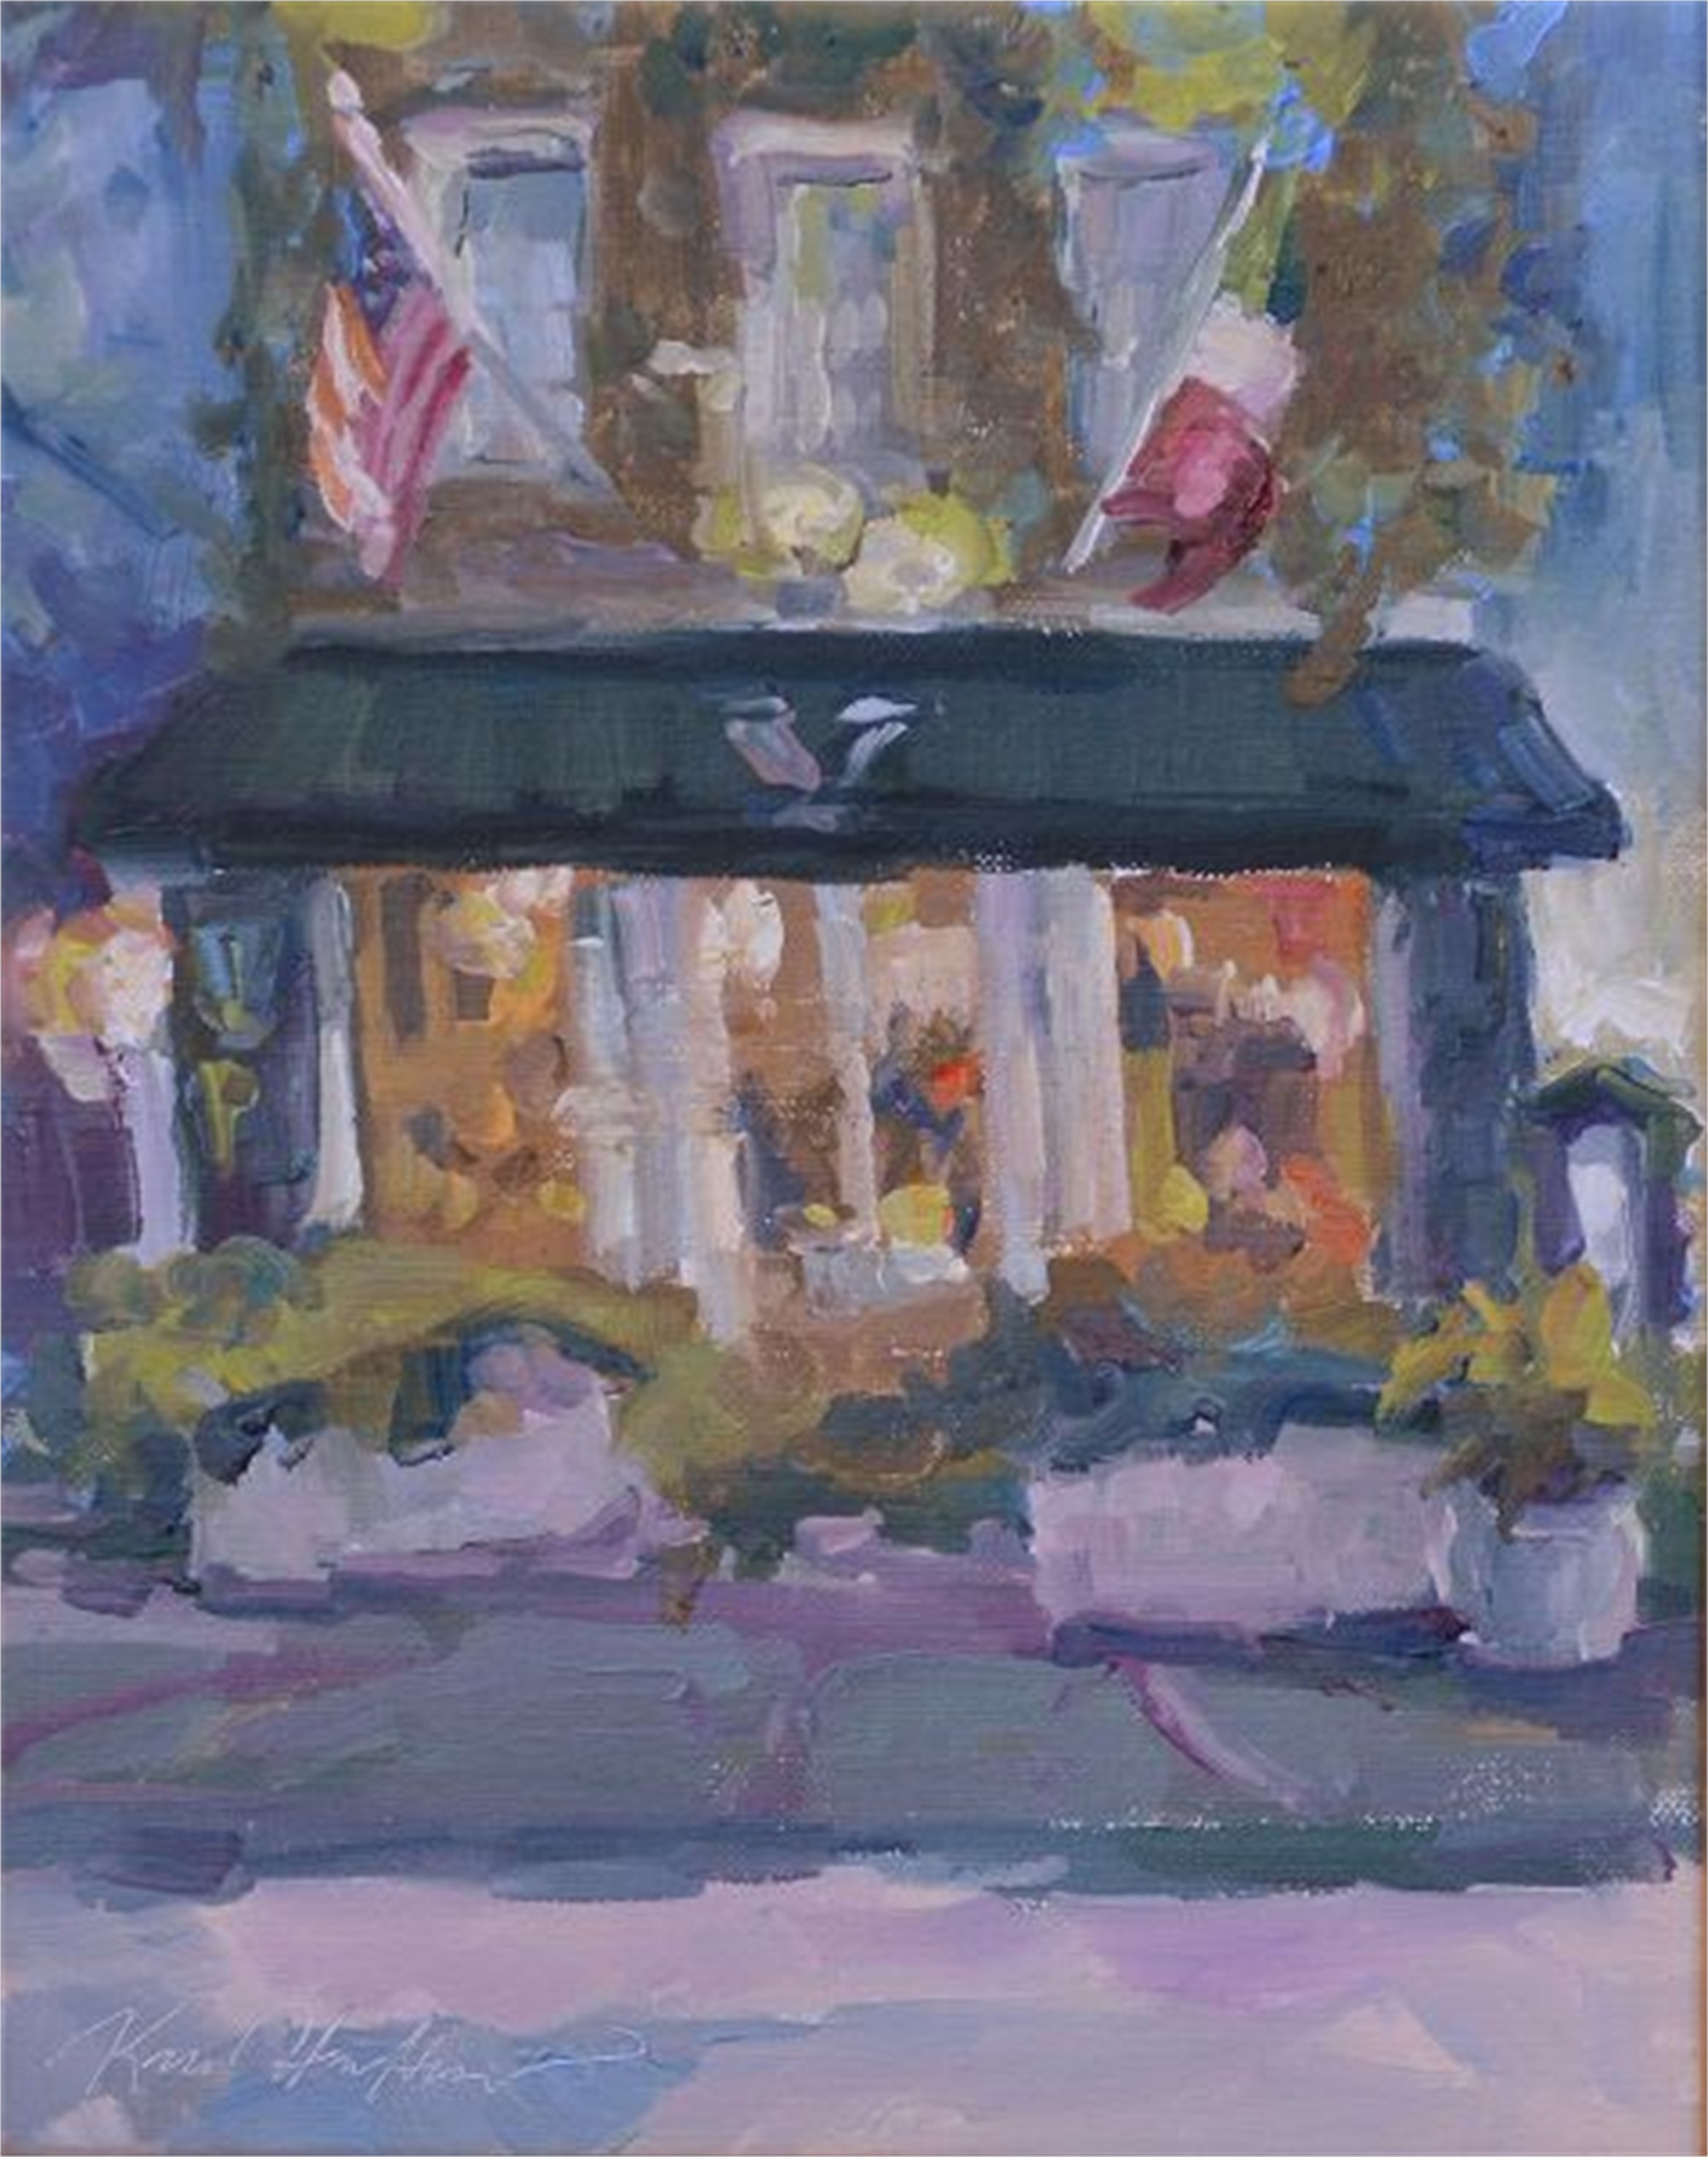 Night Time On Fulton Street by Karen Hewitt Hagan